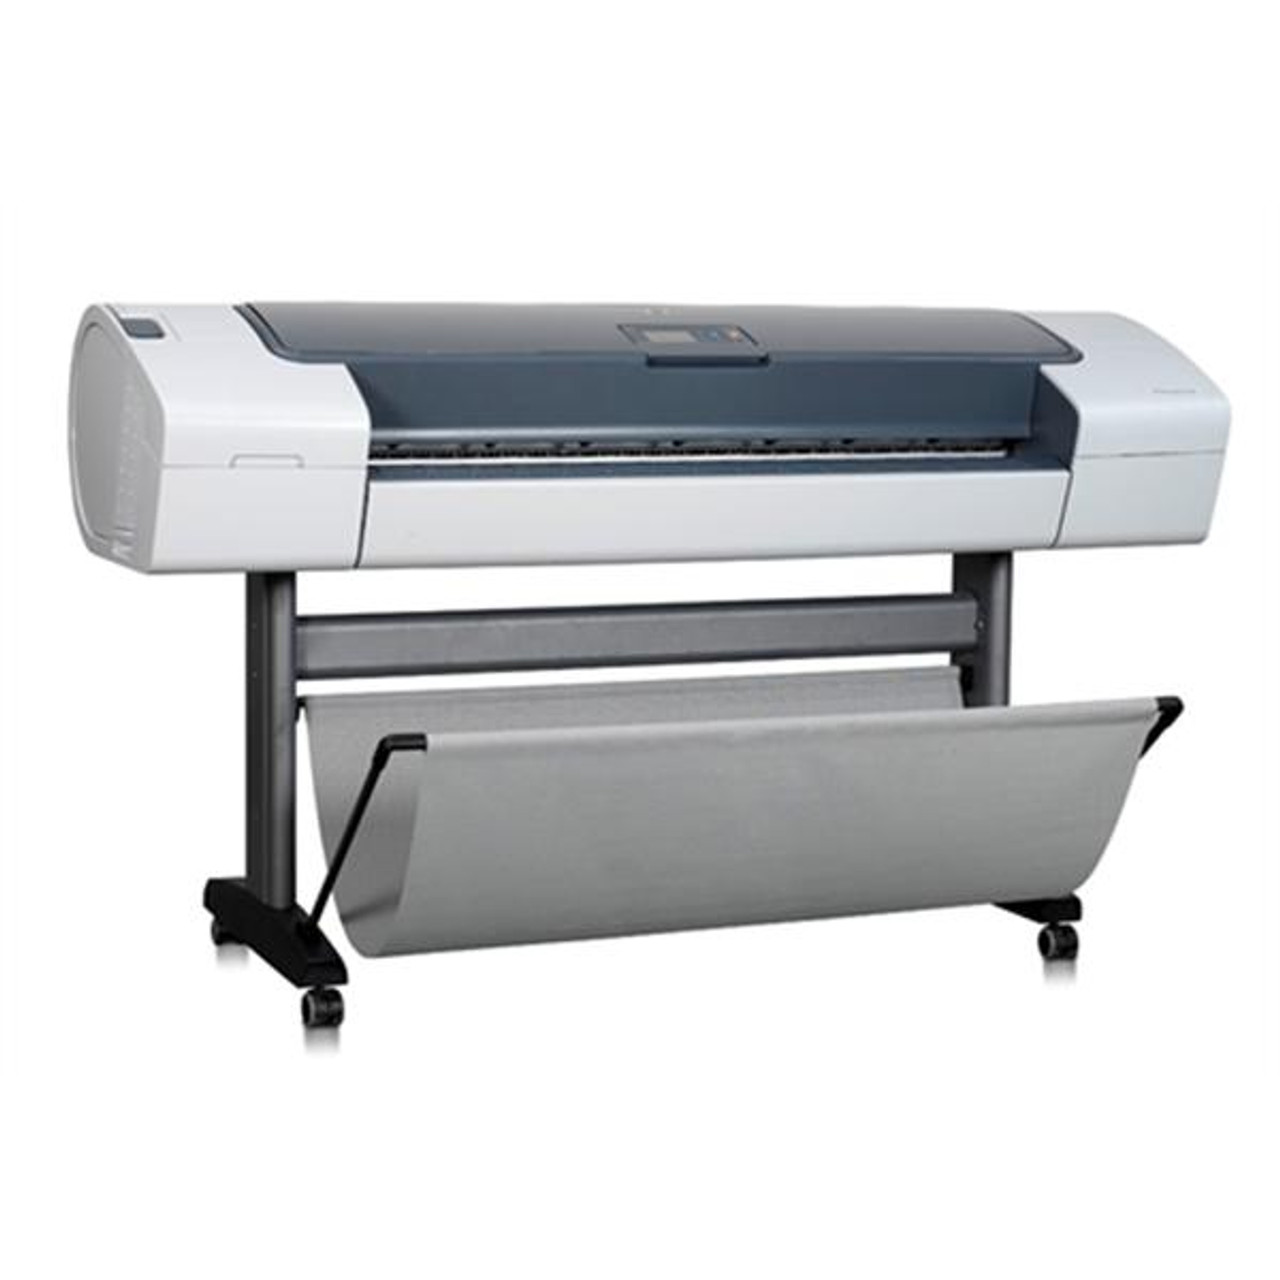 HP DesignJet T610 - Q6712A - HP Plotter for Sale